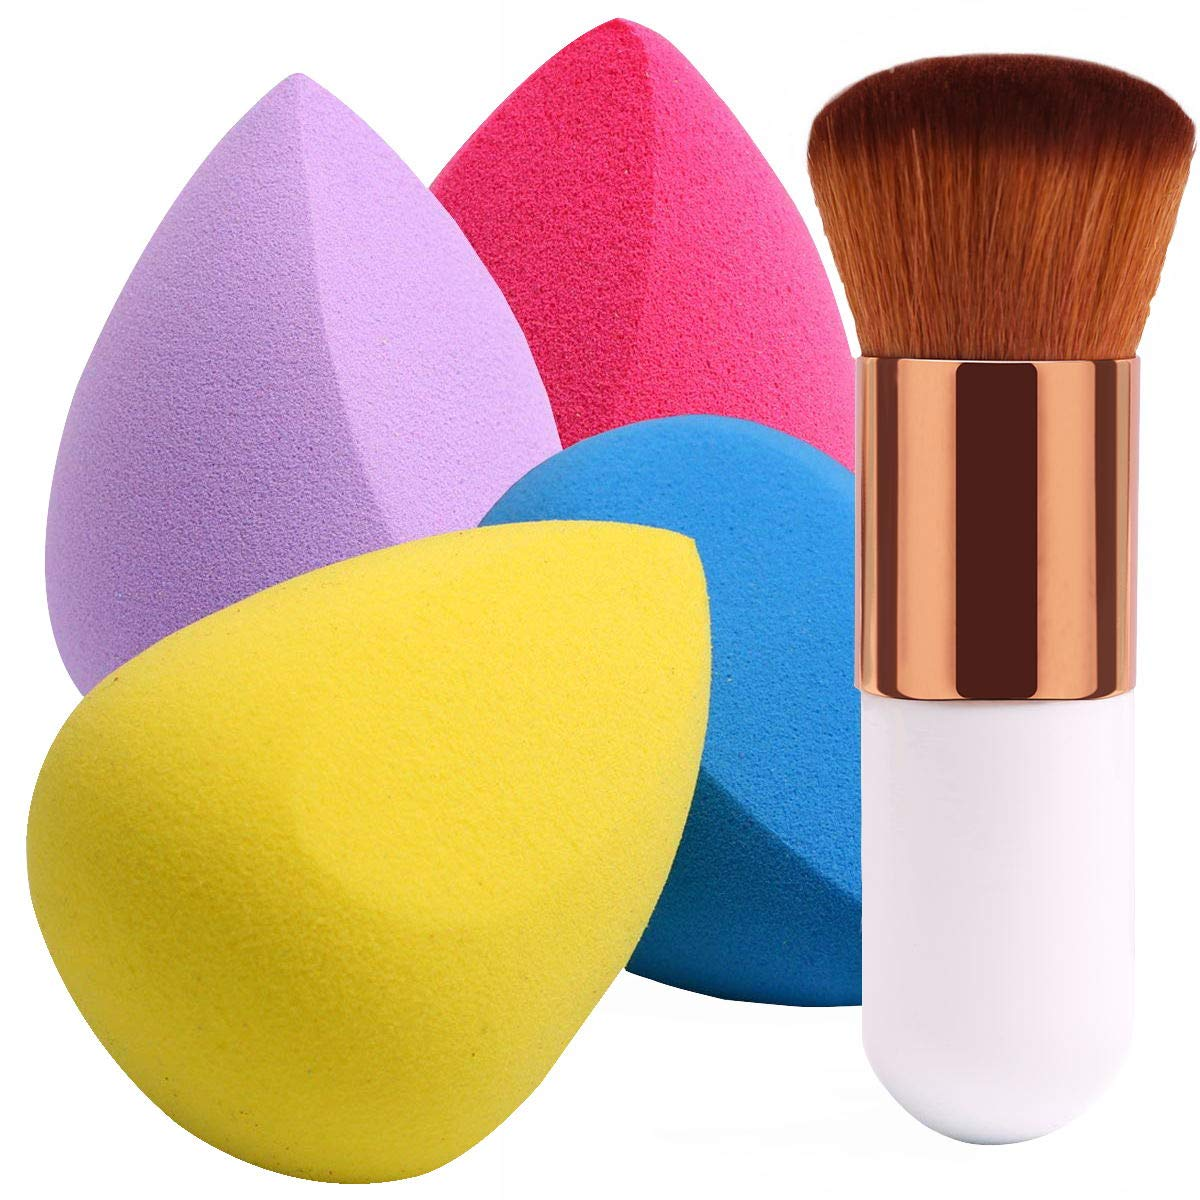 Beakey - BEAKEY 4+1Pcs Makeup Sponges with Powder Brush, Foundation Blending Sponge for Liquid Cream and Powder, Professional Beauty Sponge Blender & Kabuki Brush